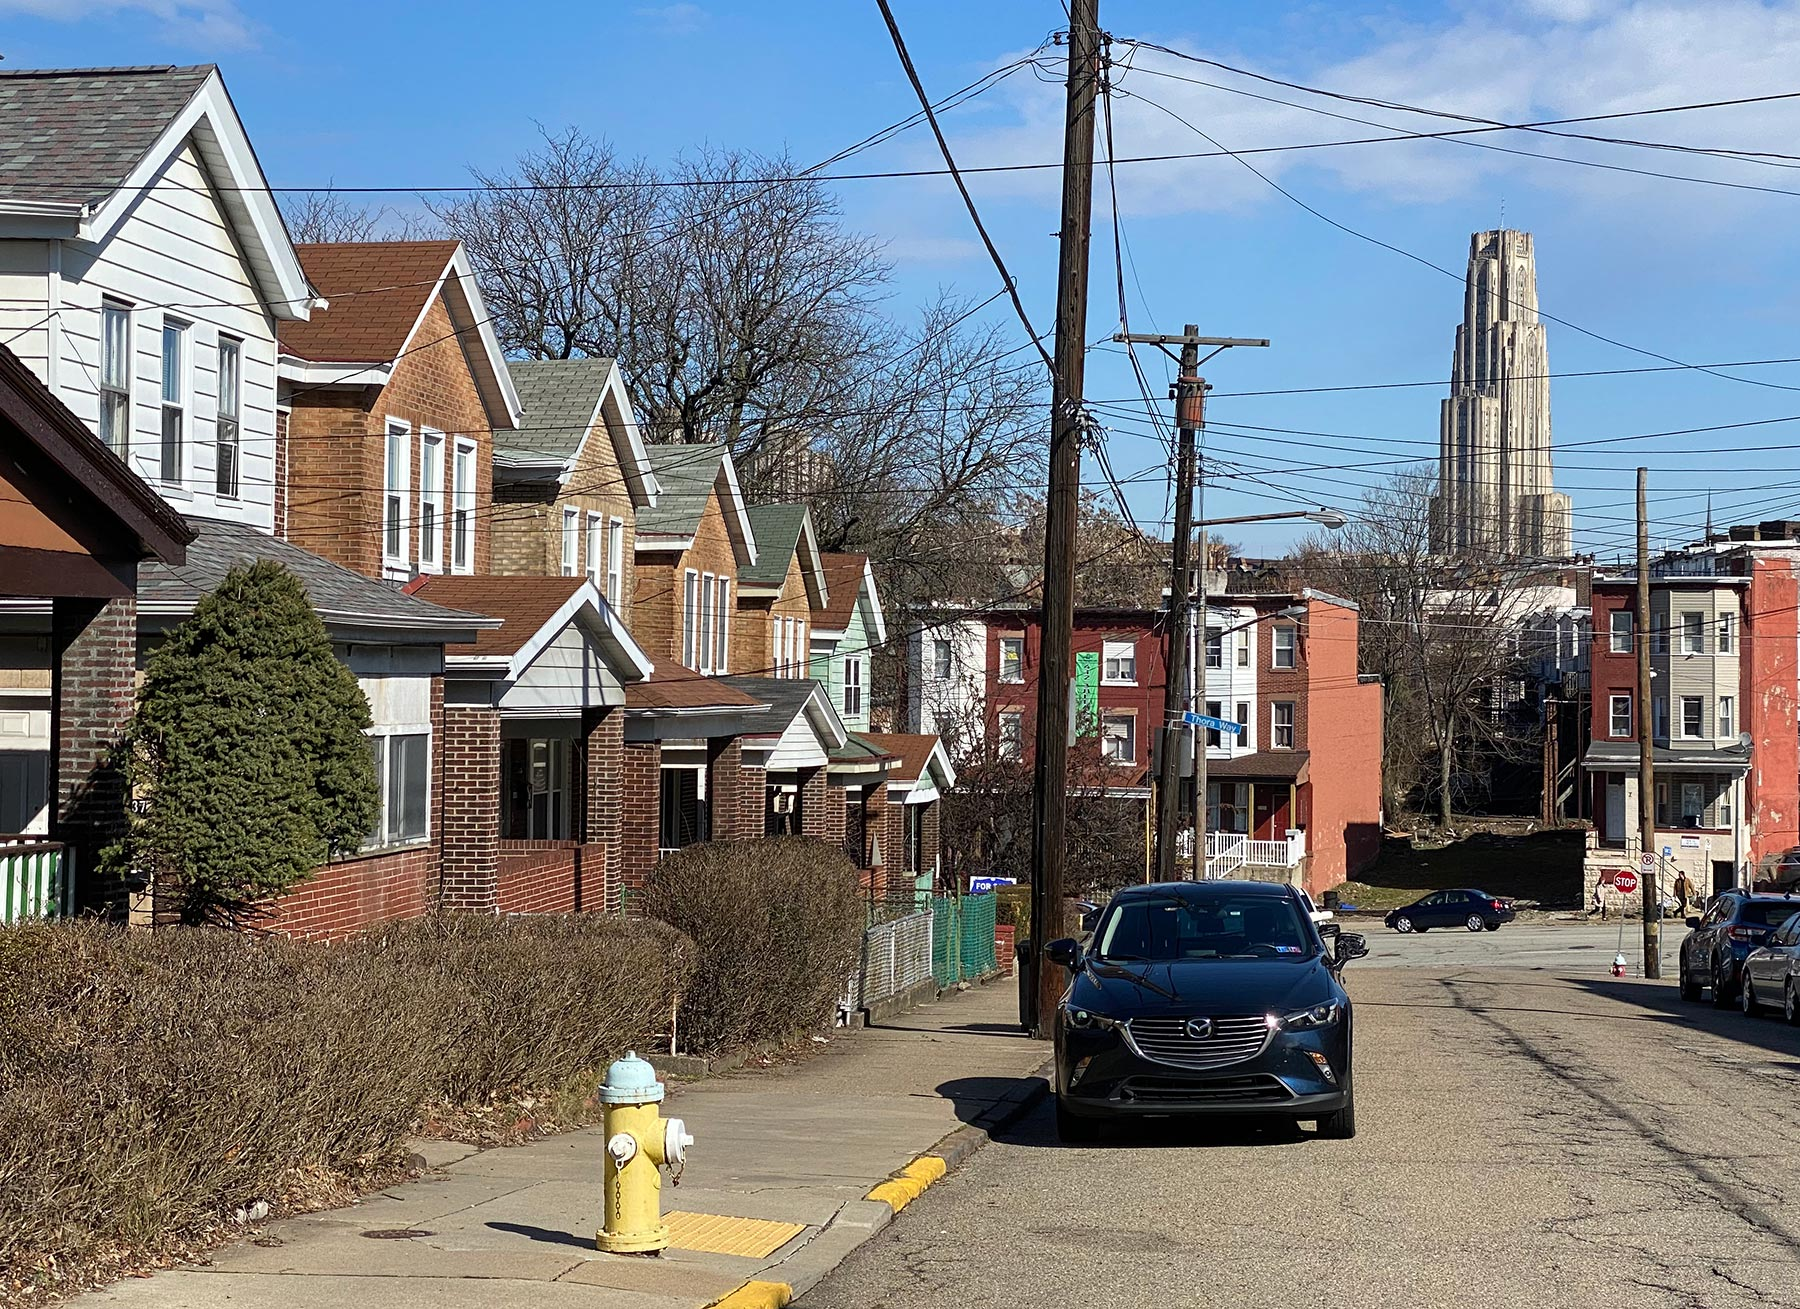 View of South Oakland with the Cathedral of Learning in the background.